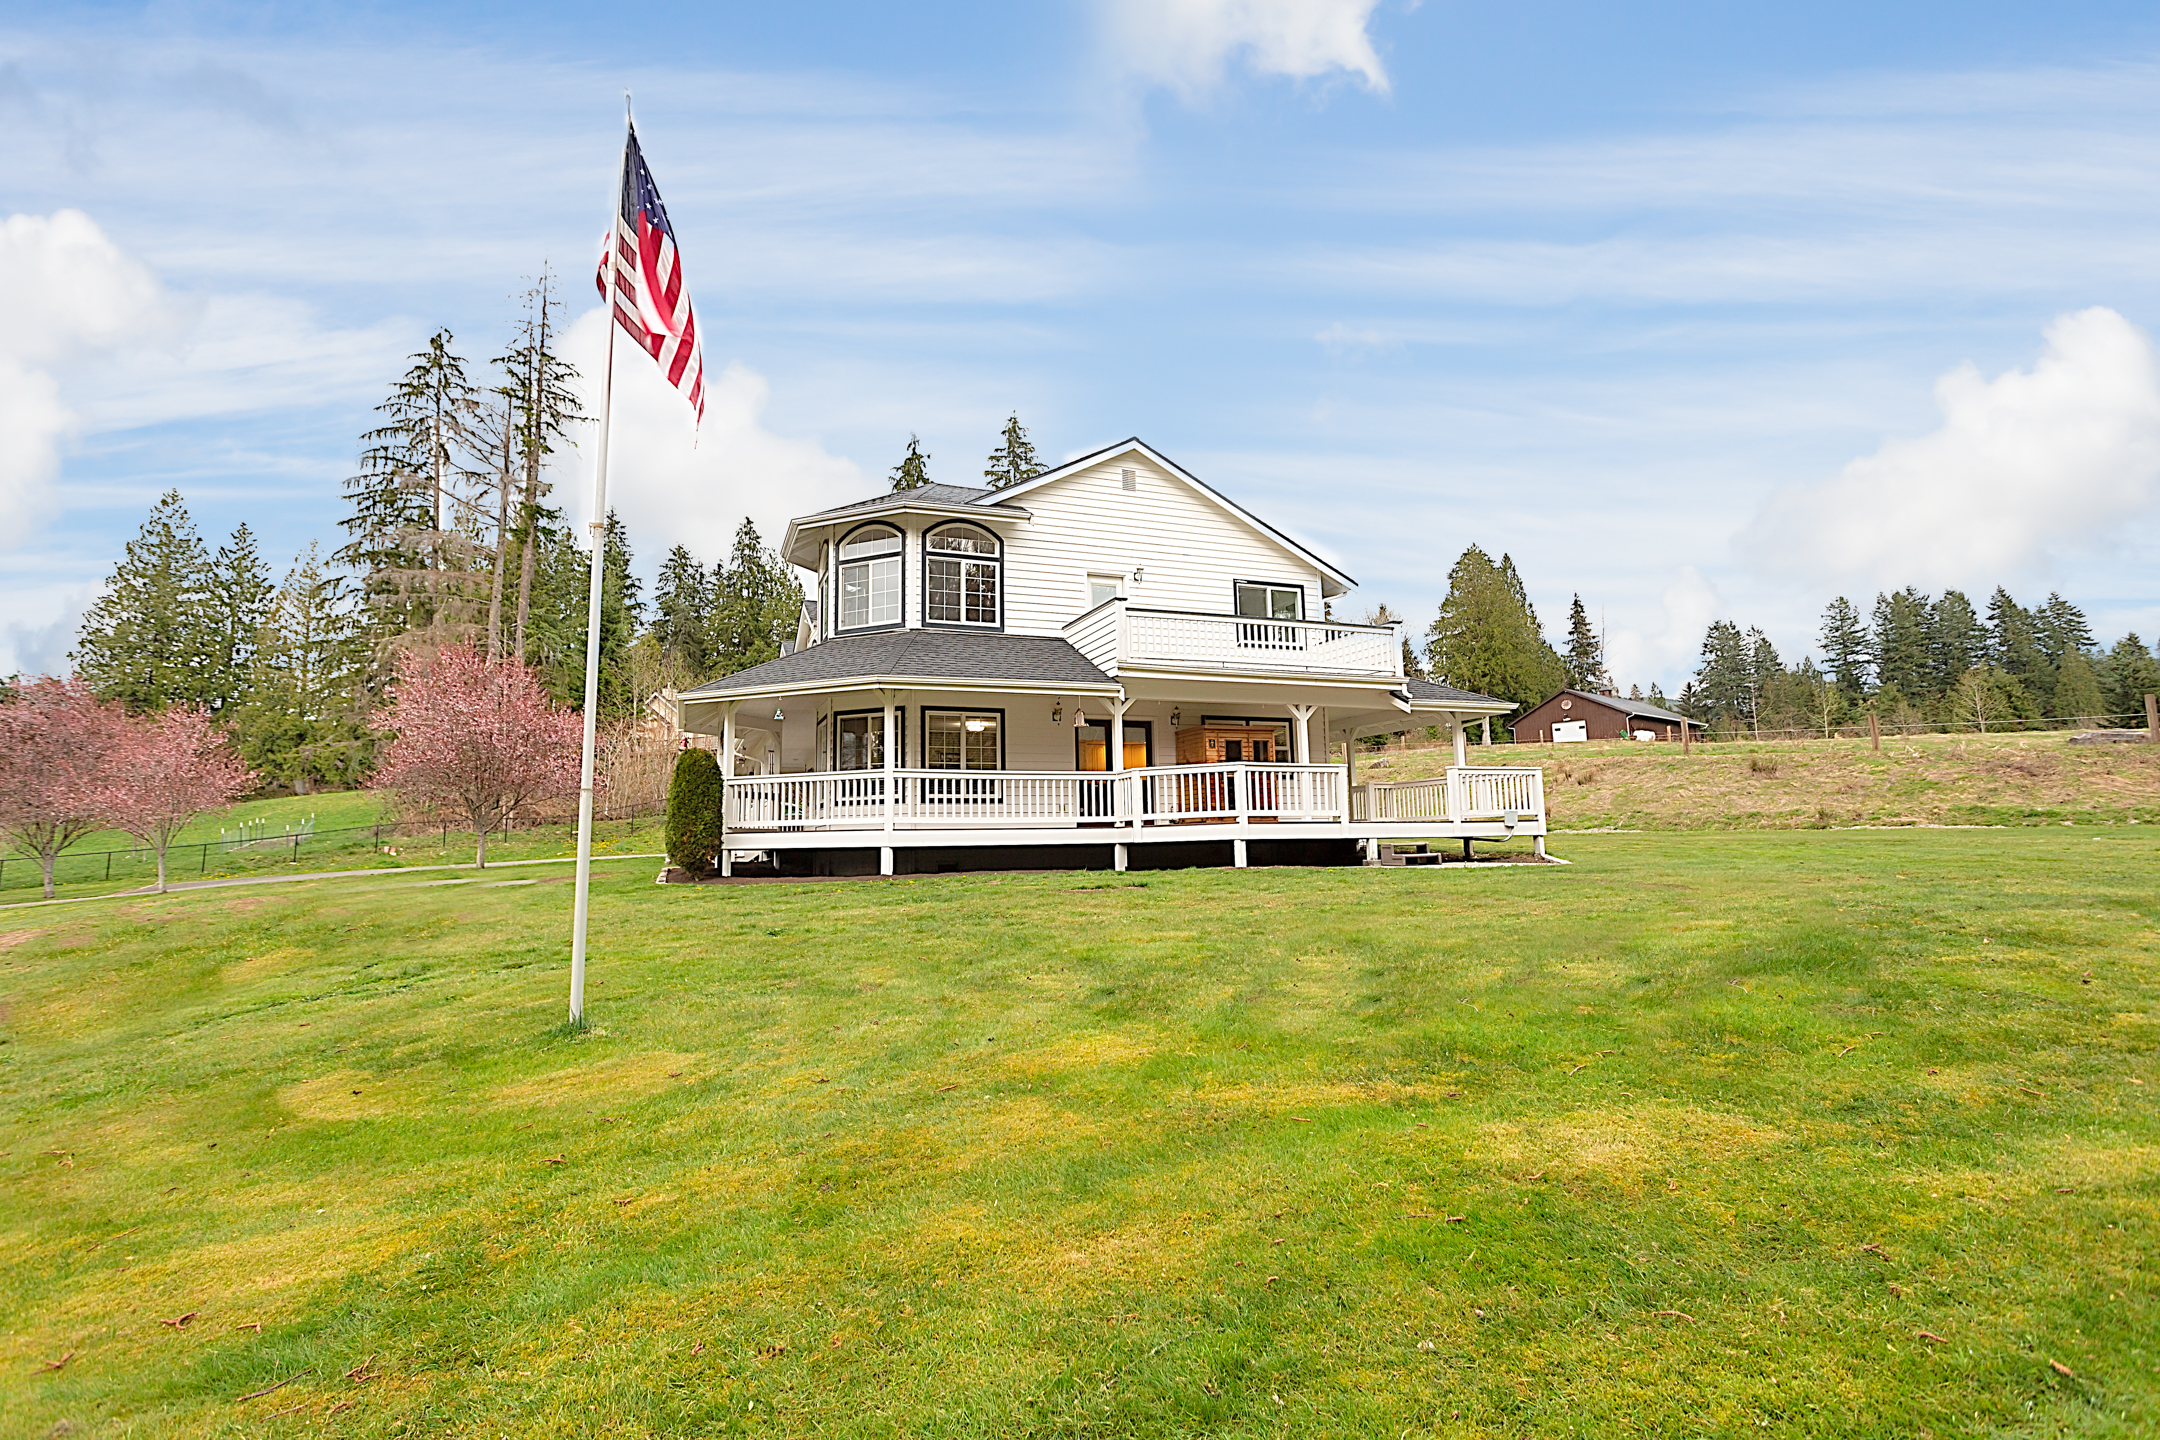 Homes for Sale in Granite Falls Washington